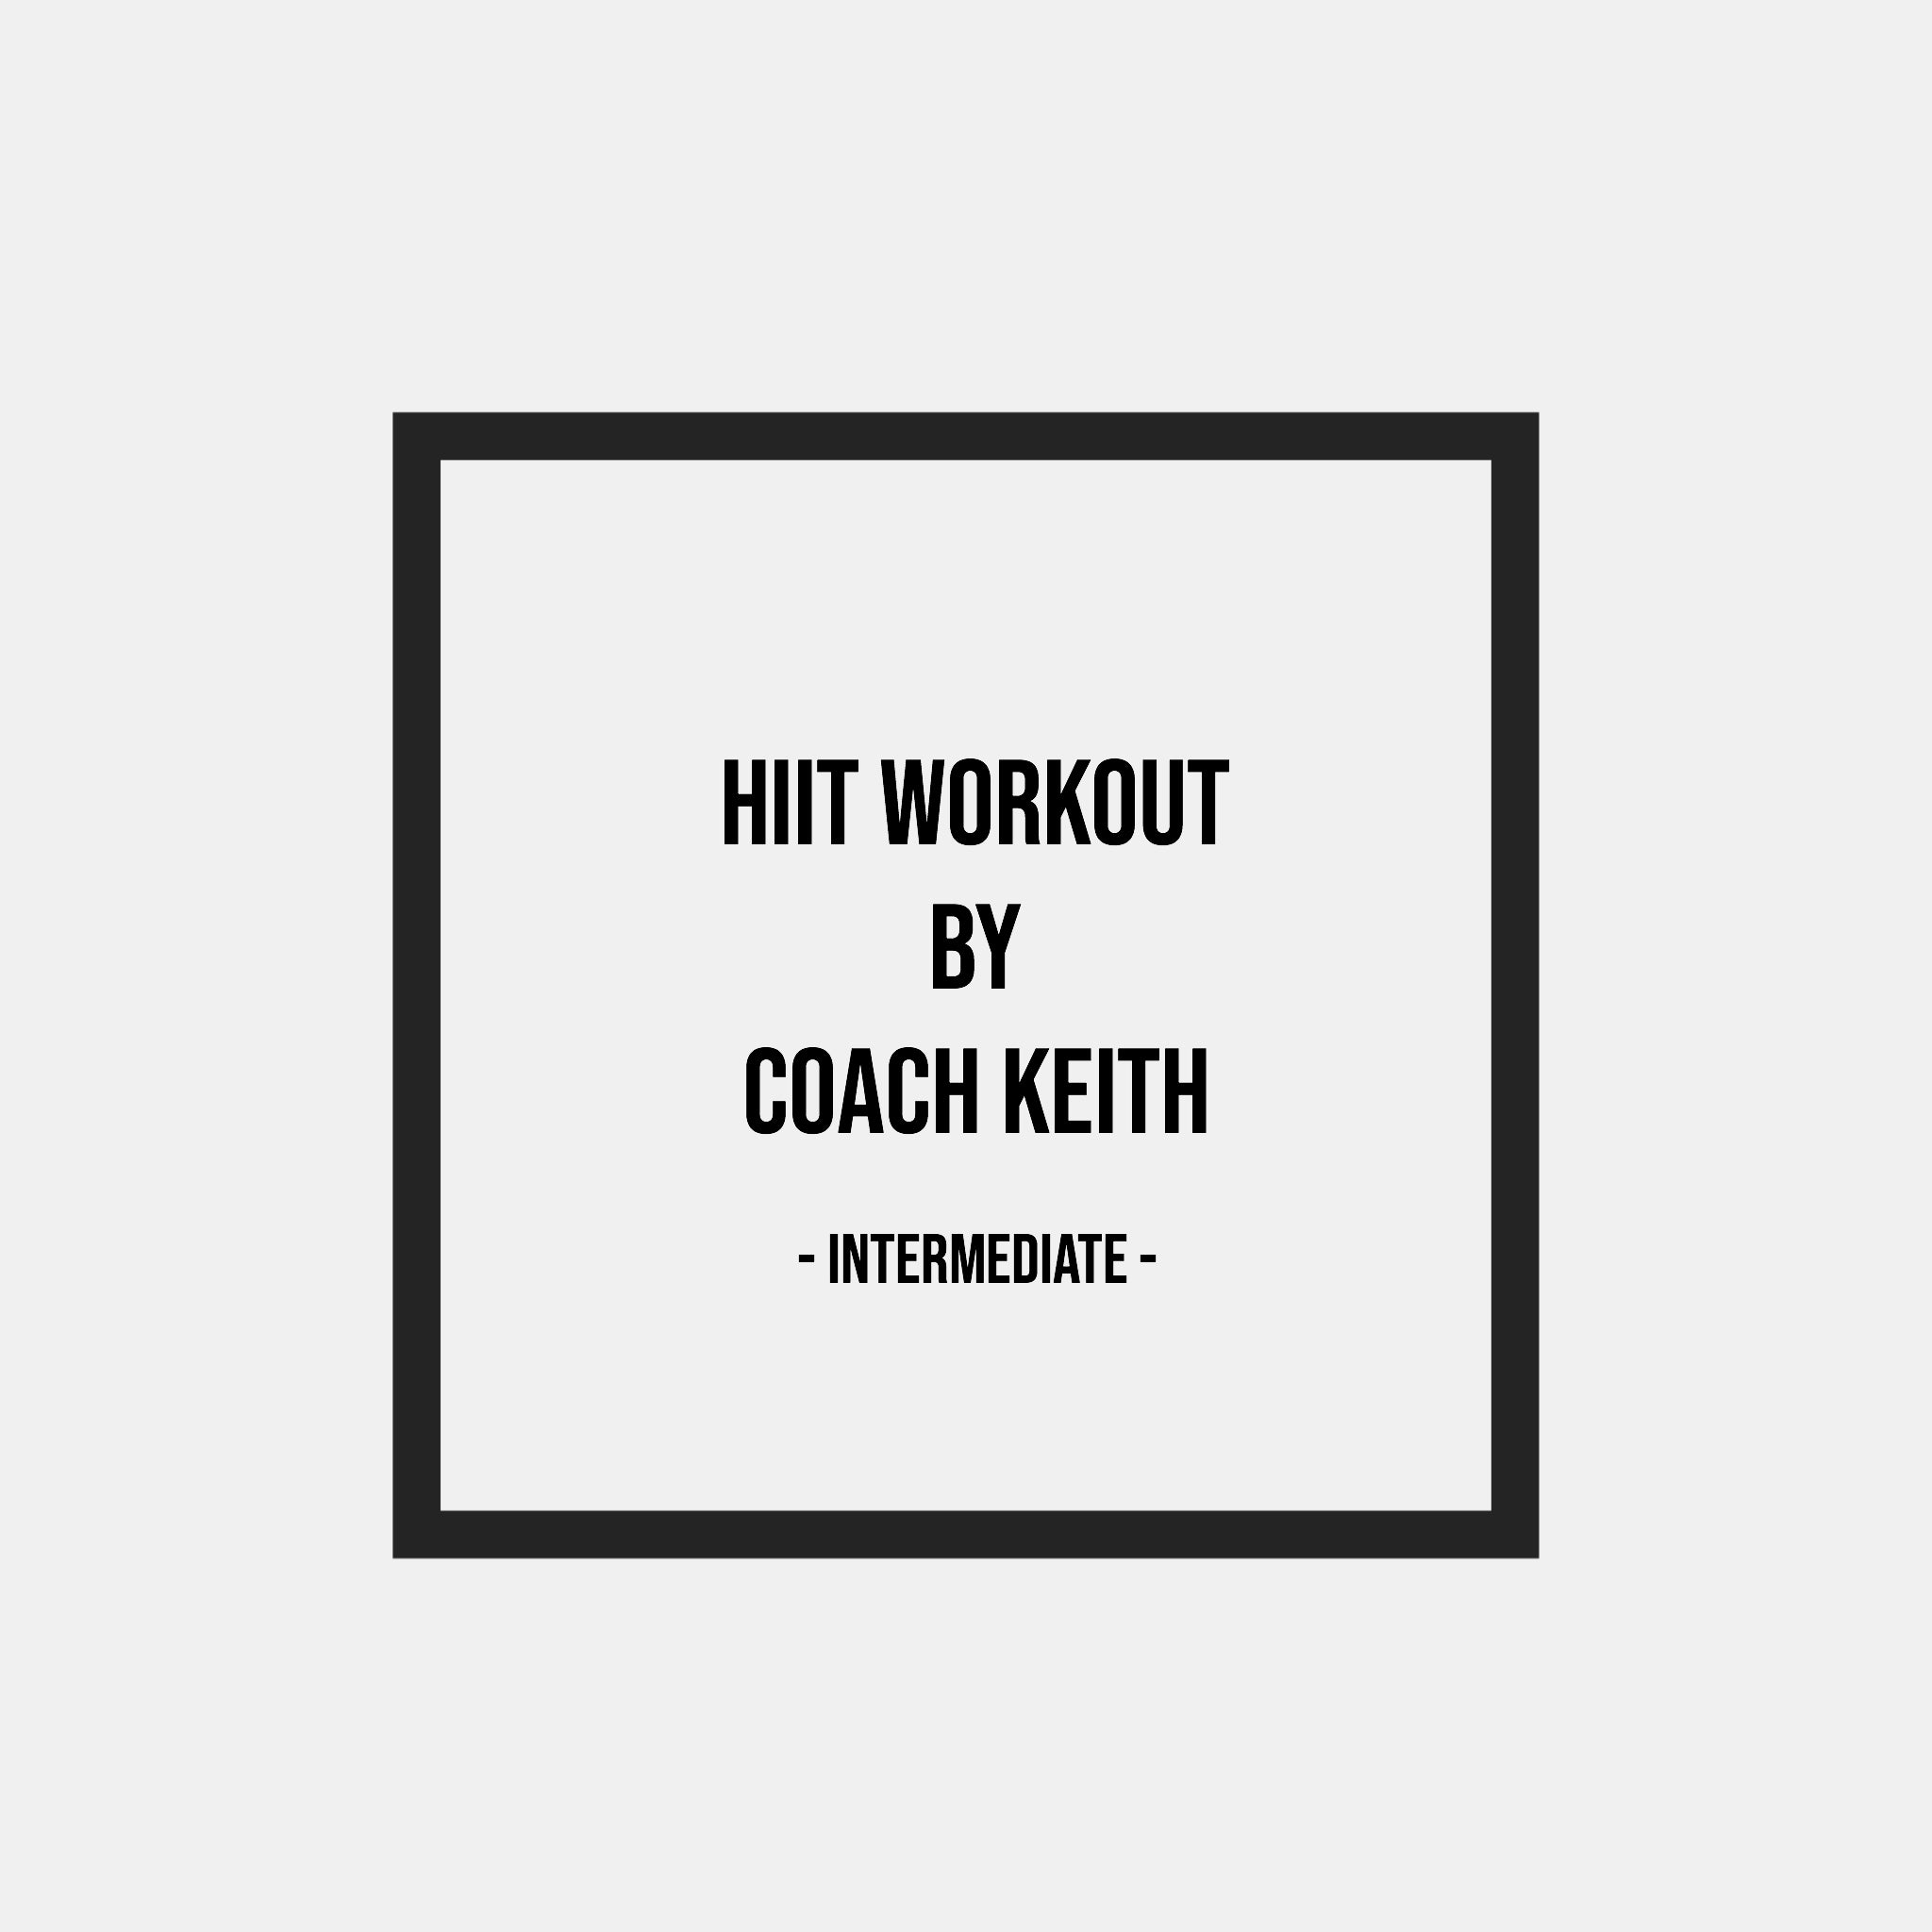 HIIT Workout By Coach Keith - Intermediate